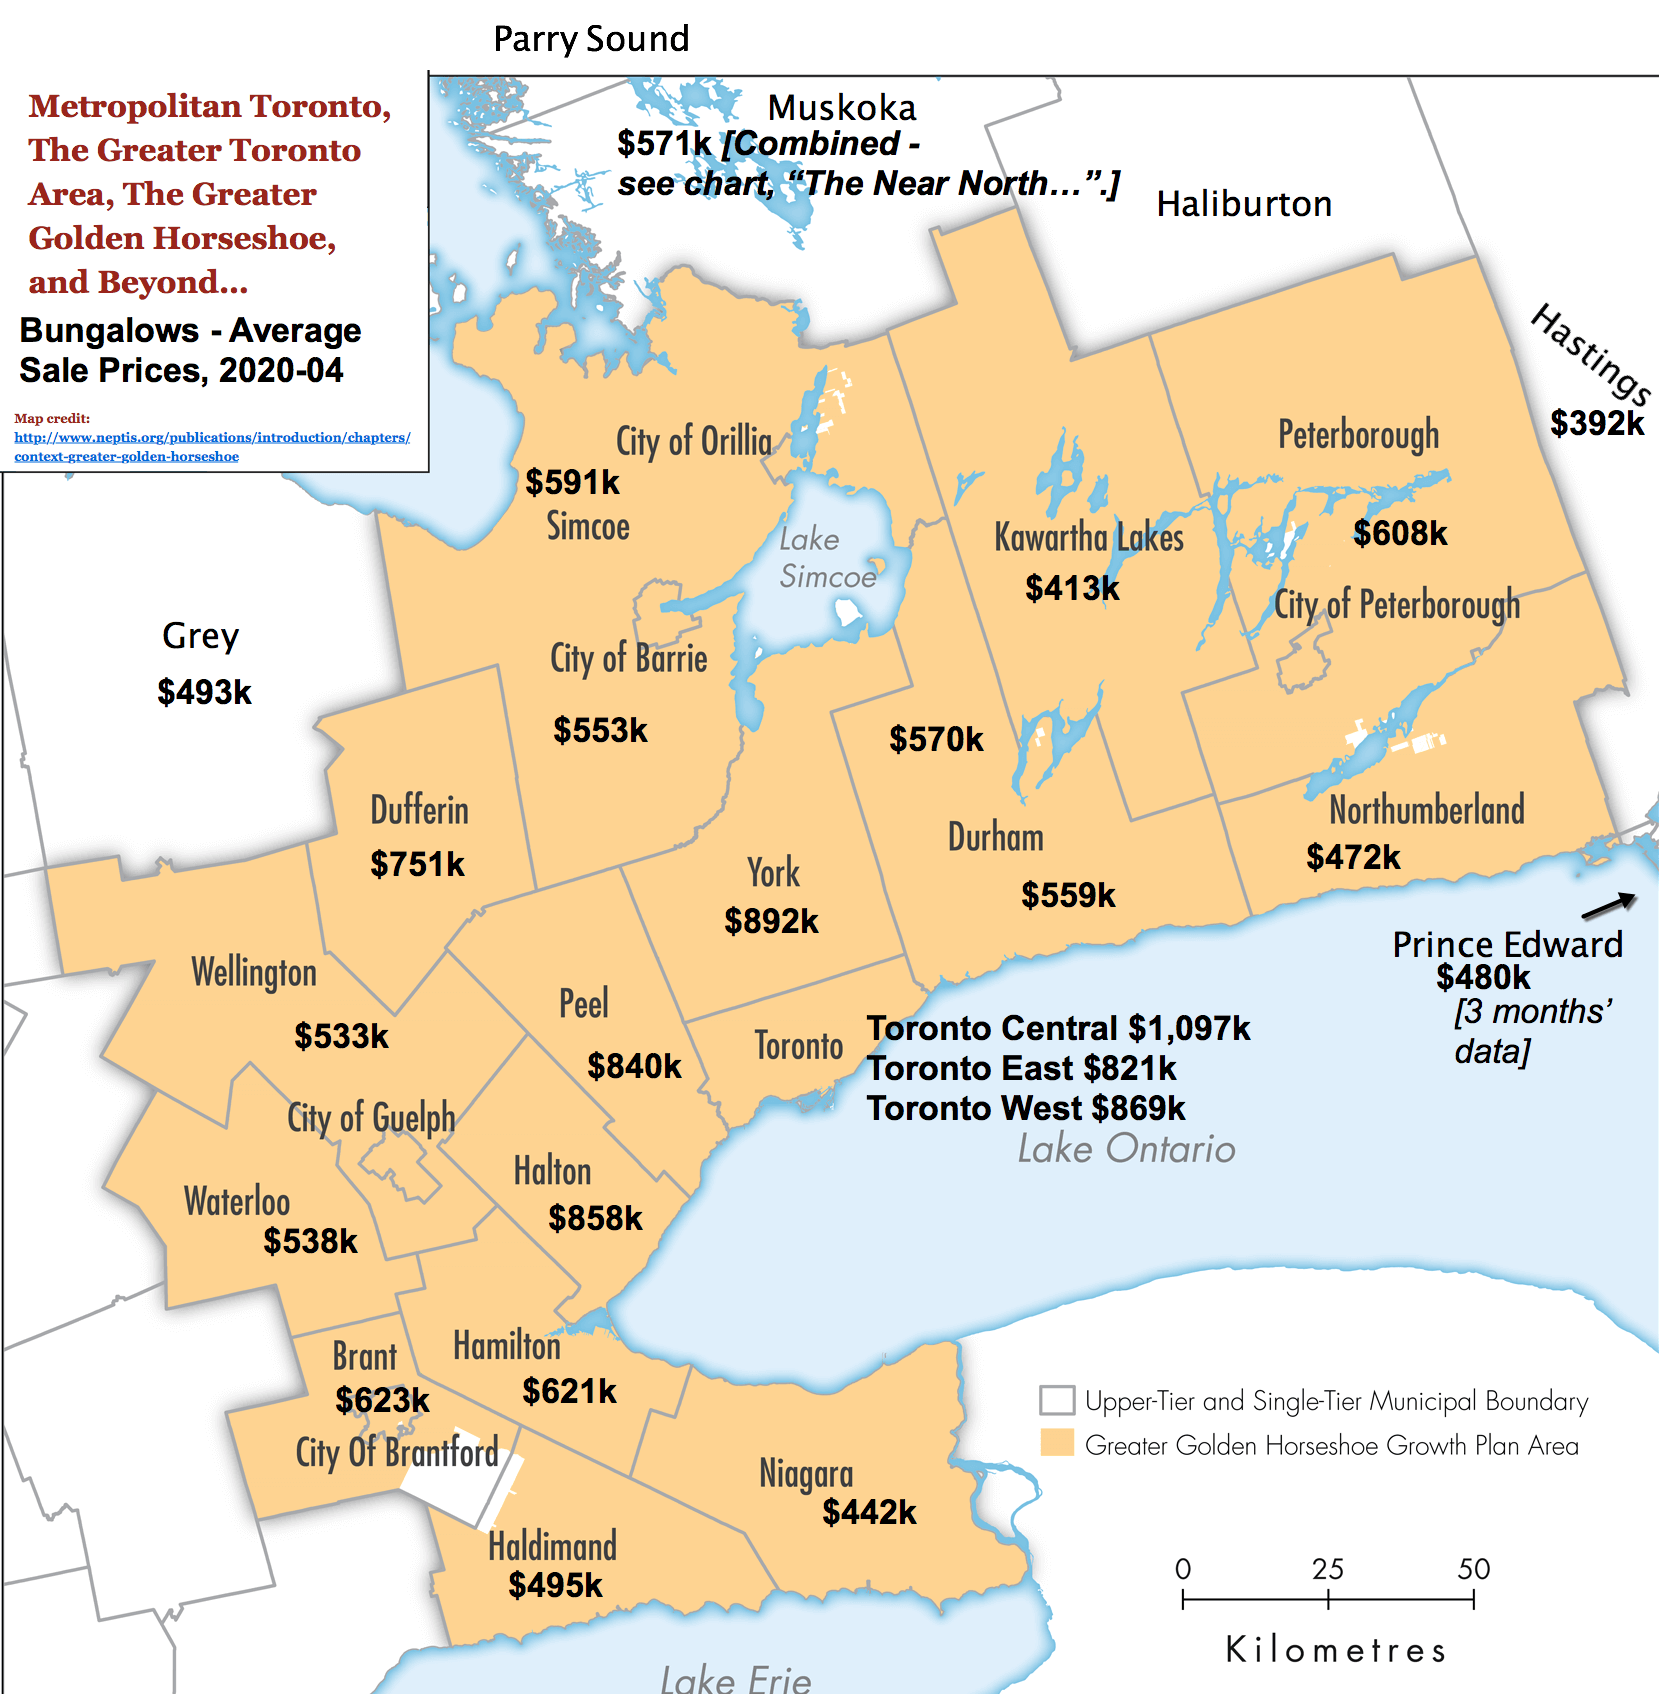 Image: Toronto / GTA / GGH Reference Map with 2020-04 Bungalow Prices & Stats by City / Region